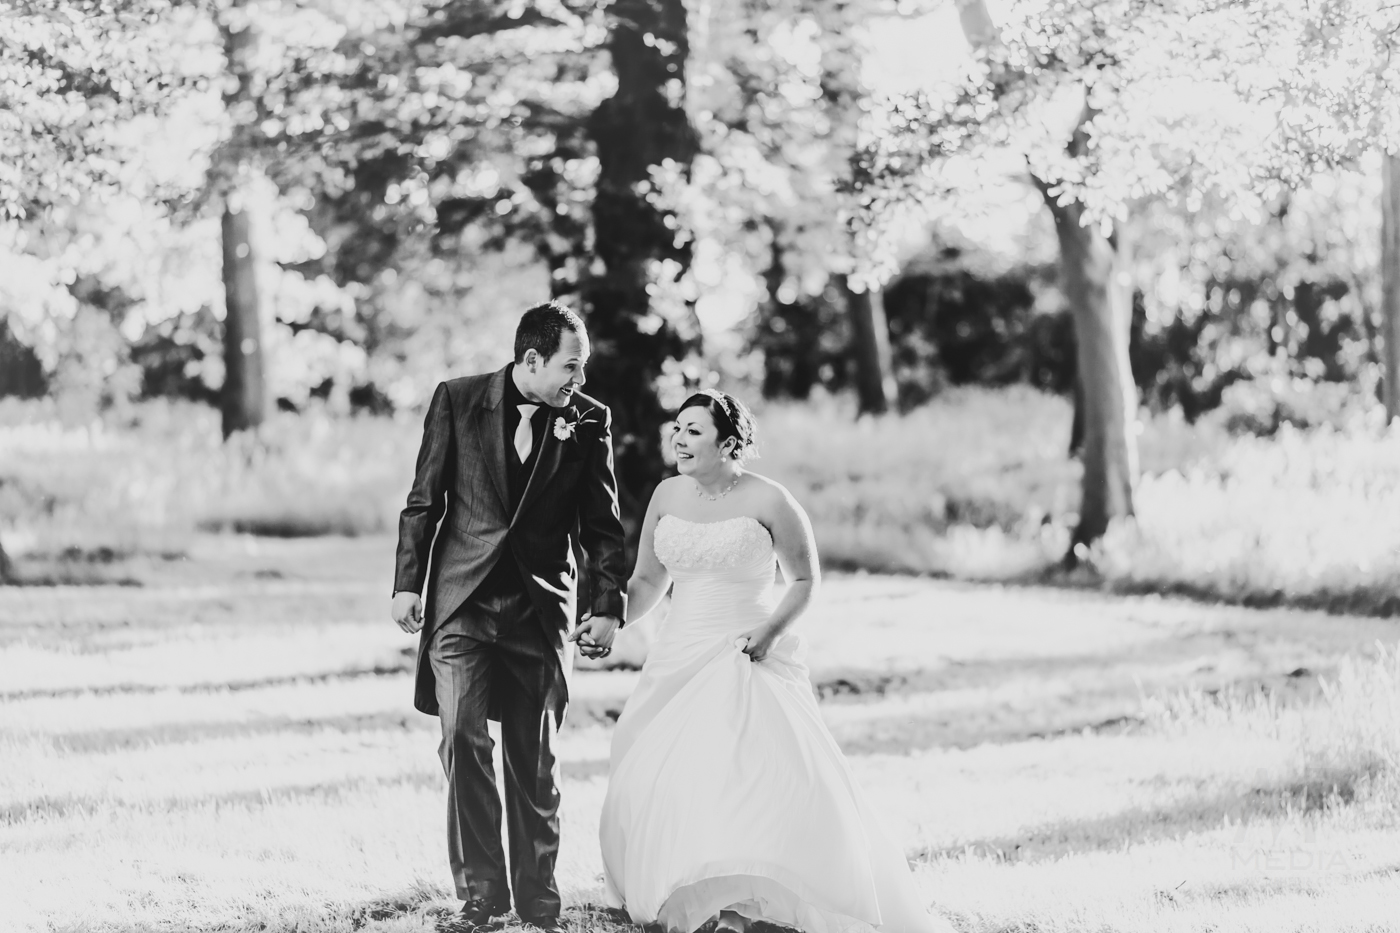 565 - Chris and Natalies Wedding (MAIN) - DO NOT SHARE THIS IMAGES ONLINE -4852.JPG